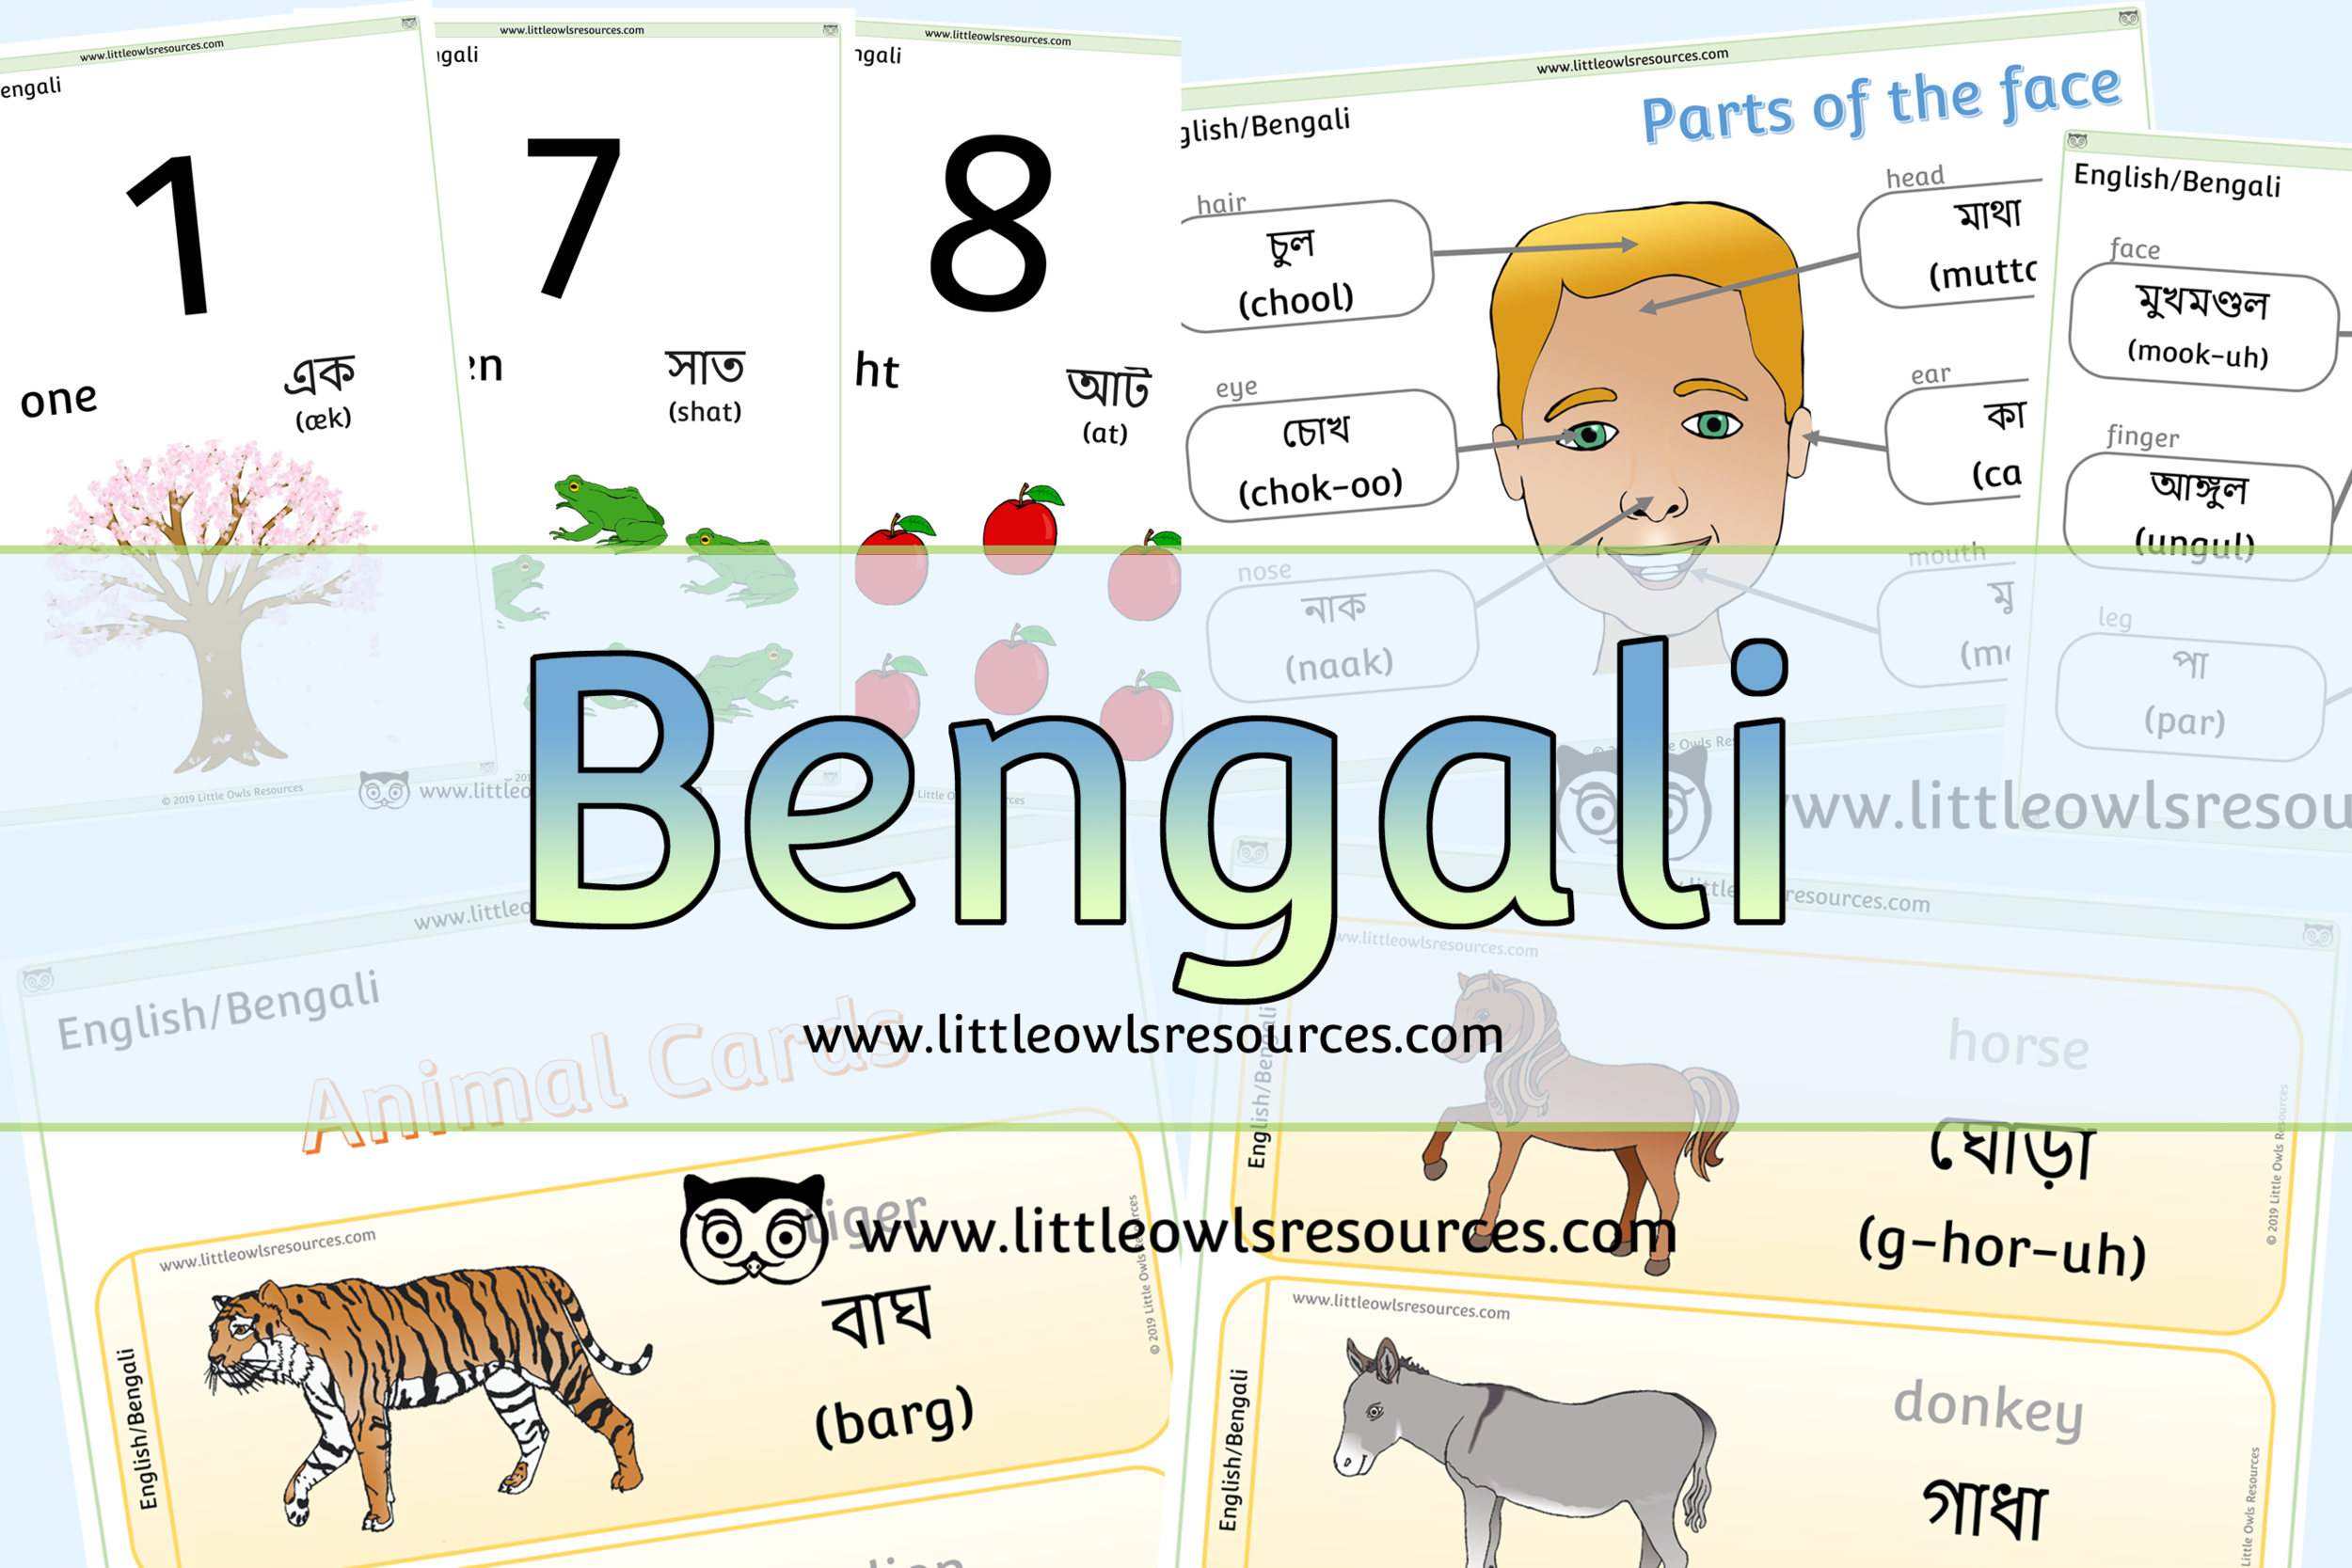 Bengali/English Dual Language Resources